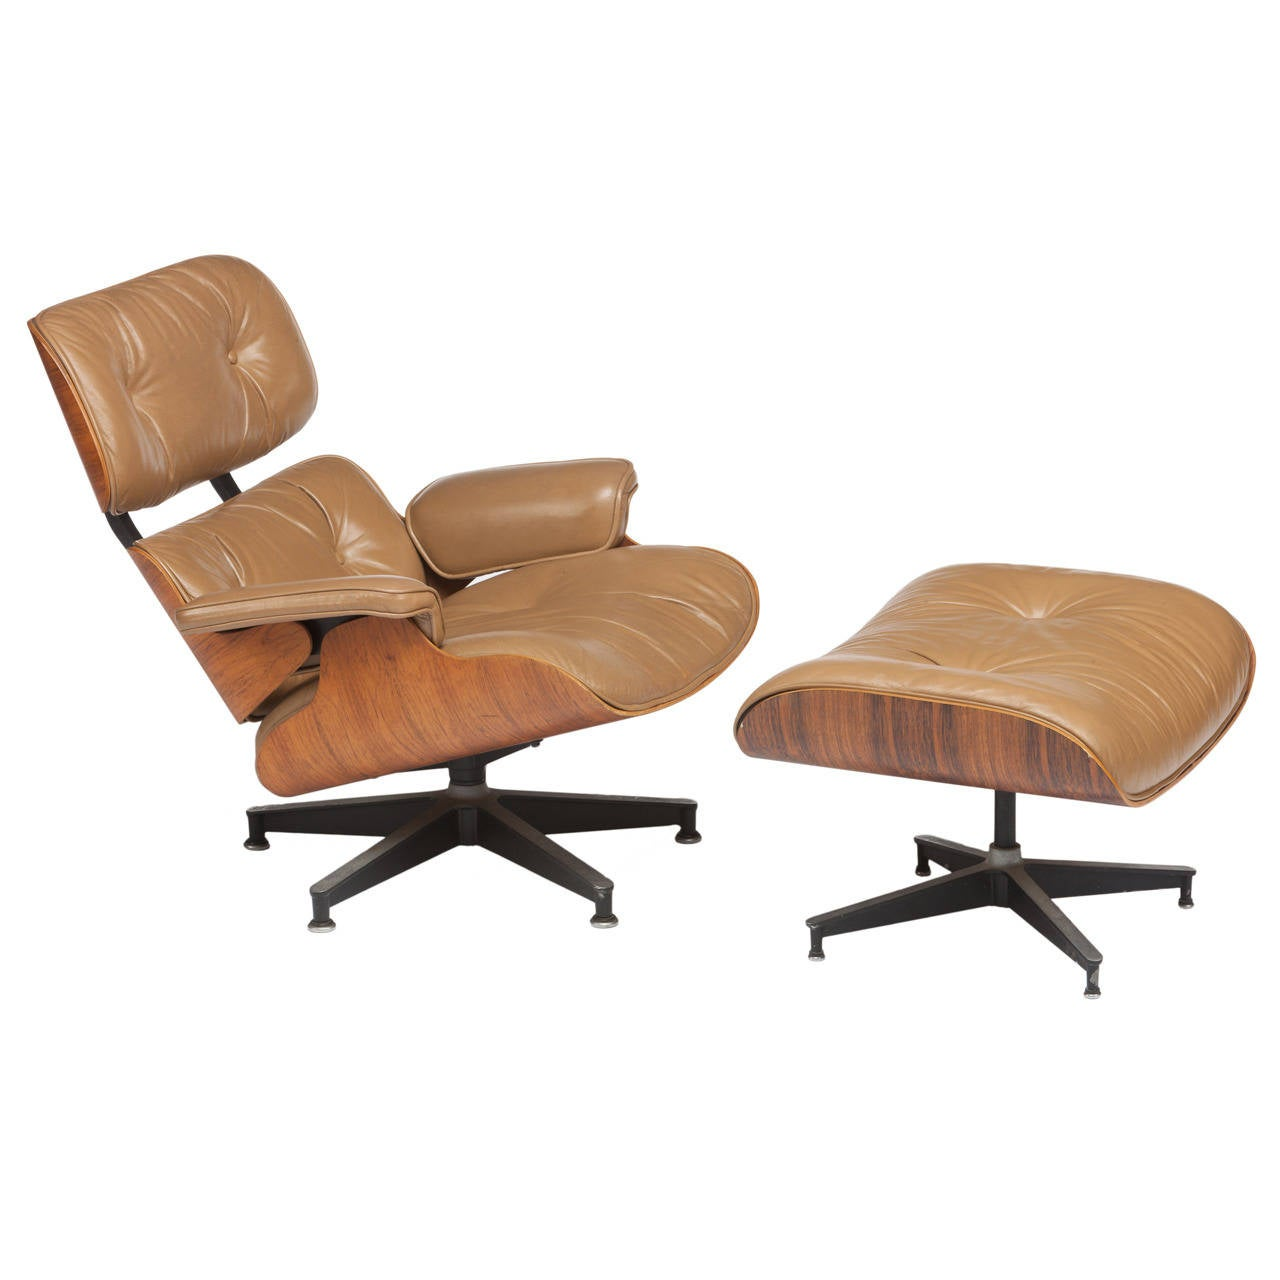 Eames 670 671 Rosewood Lounge Chair And Ottoman For Herman Miller At 1stdibs